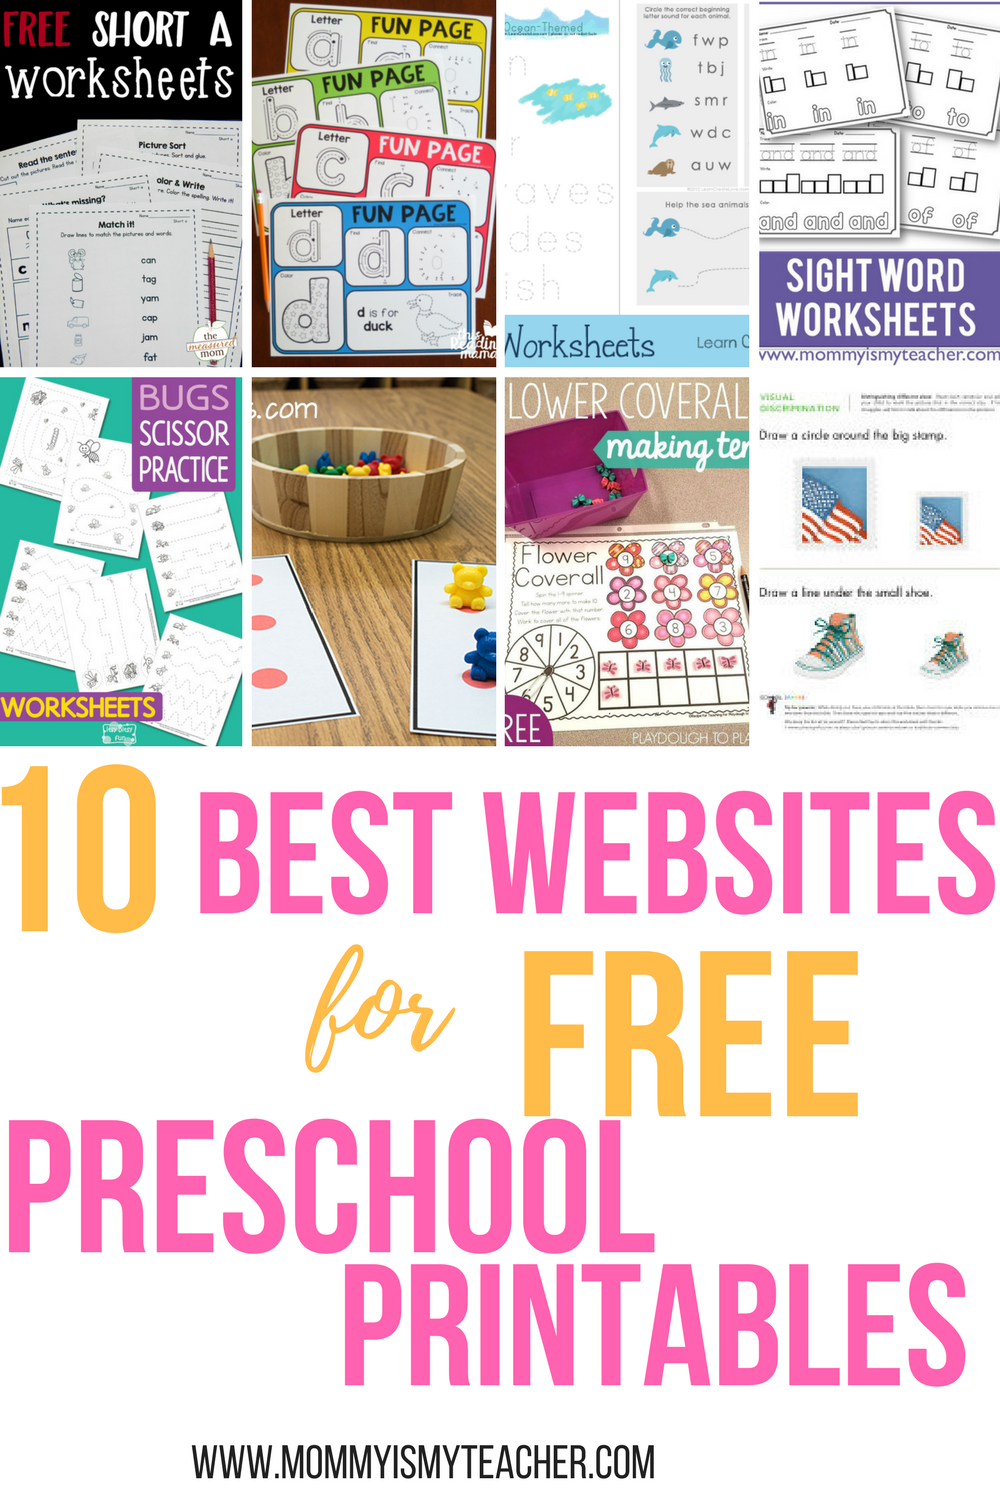 10 Best Websites for Free Preschool Printables Free